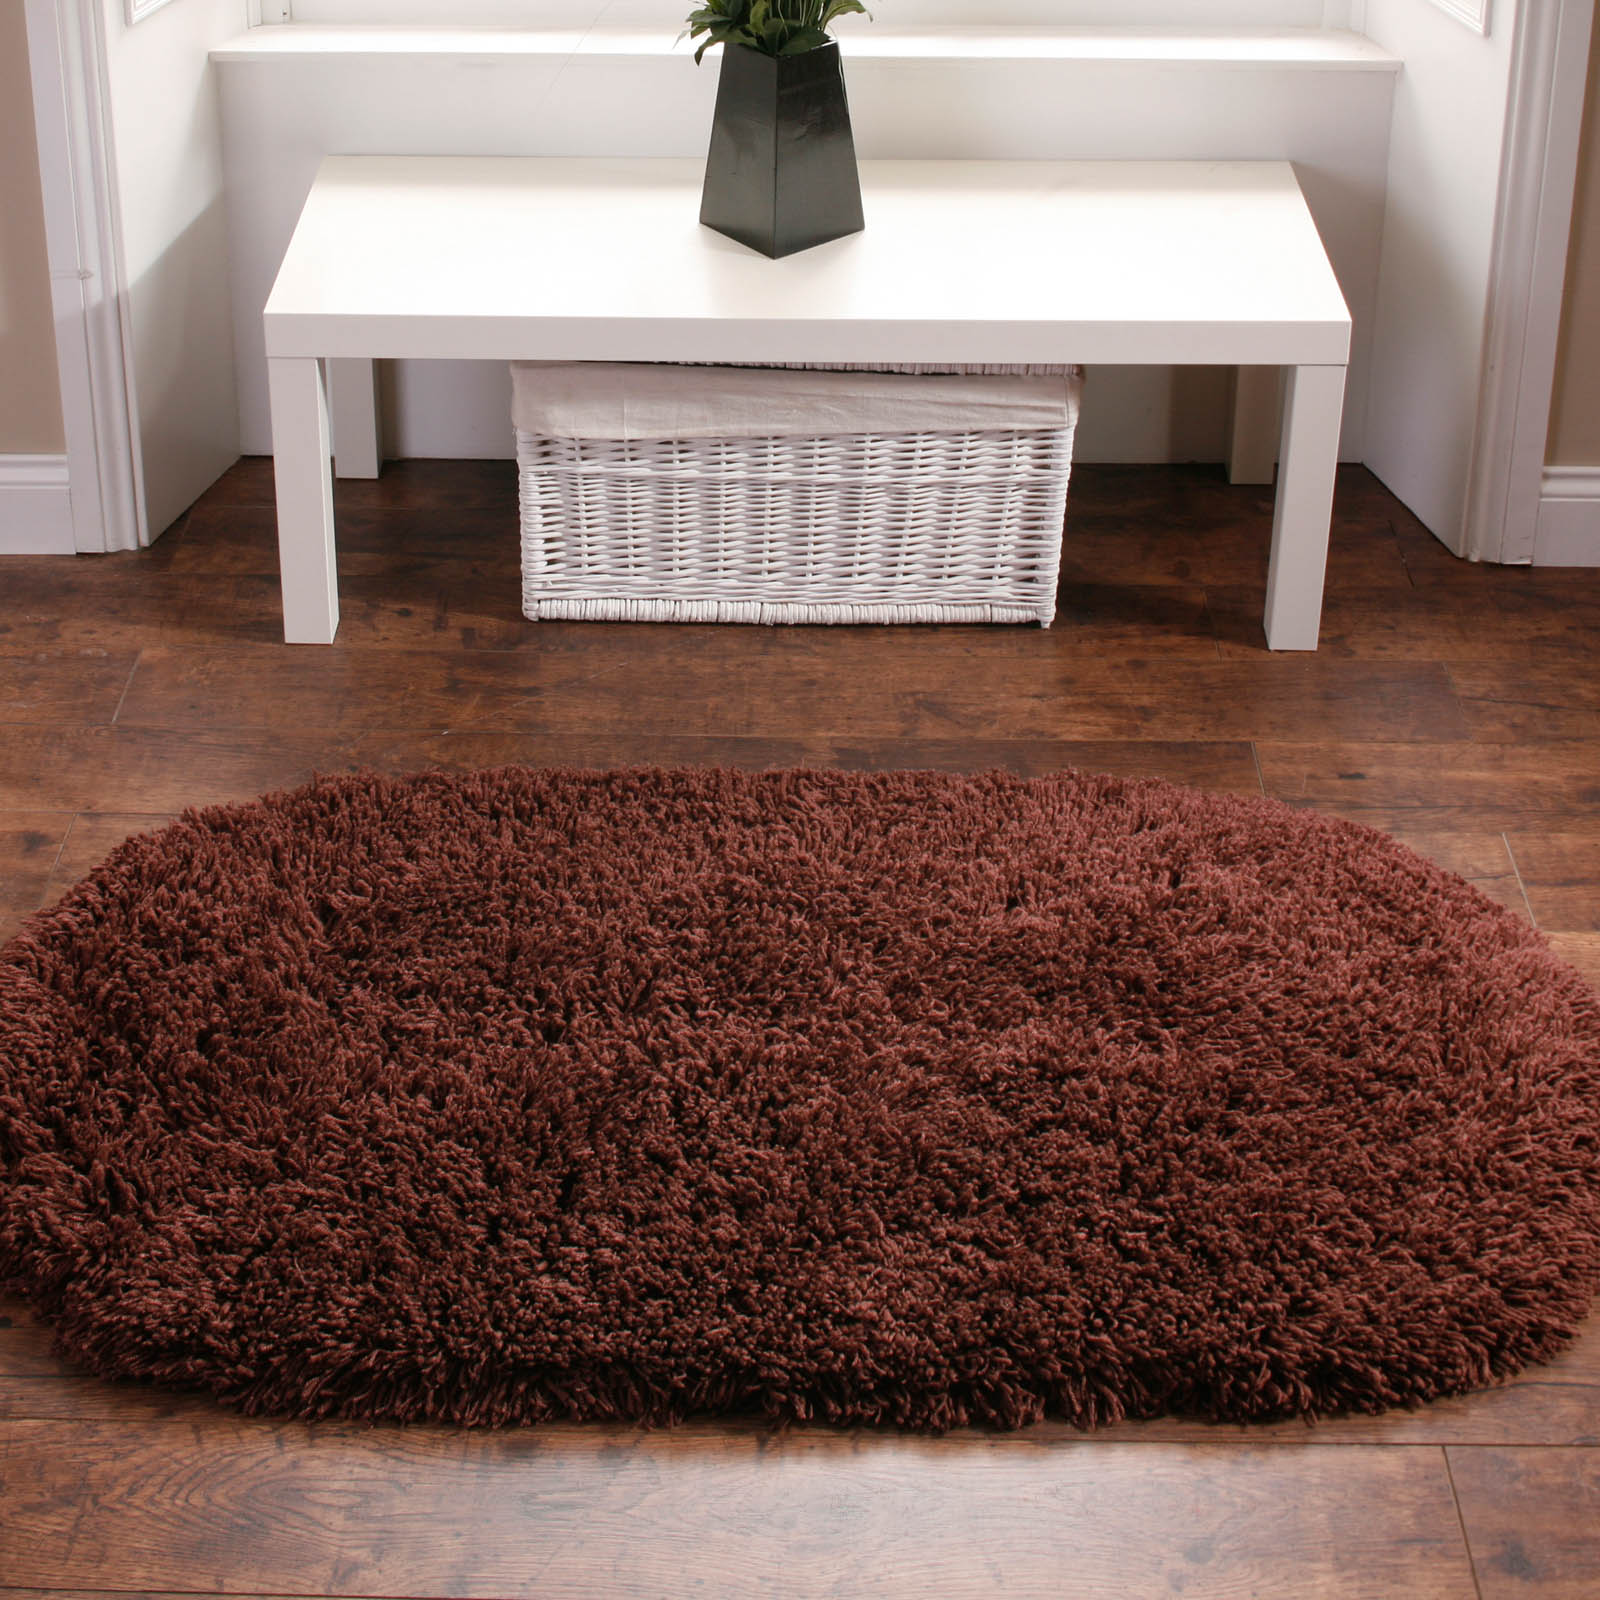 Shaggy Football Rug: Rainbow Shaggy Washable Rugs In Green Buy Online From The